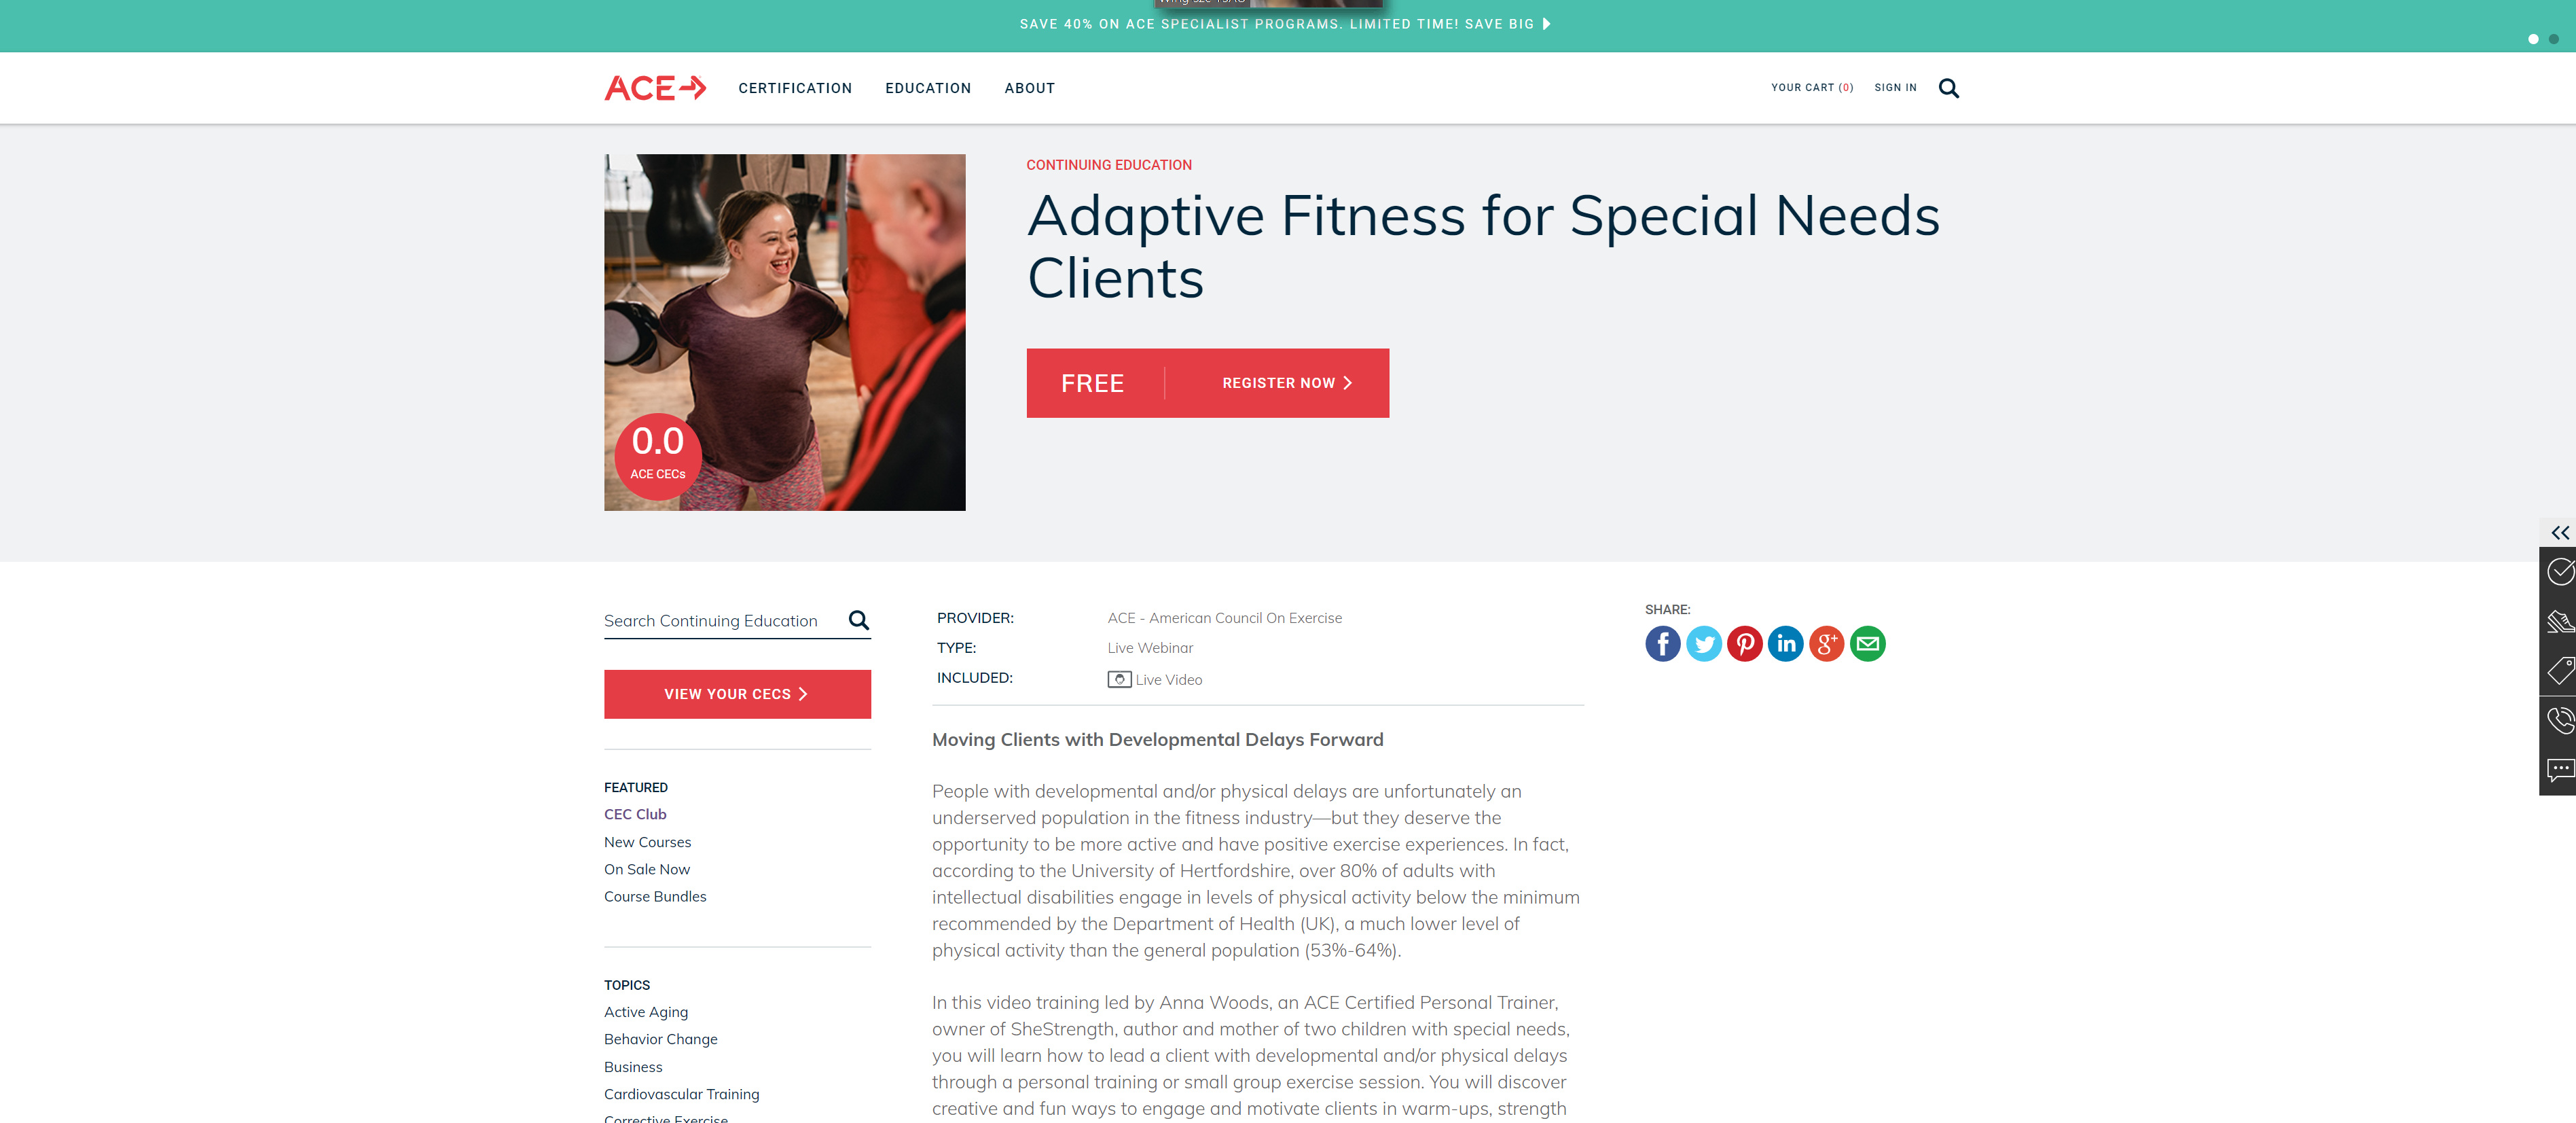 A free webinar hosted by Ace about fitness